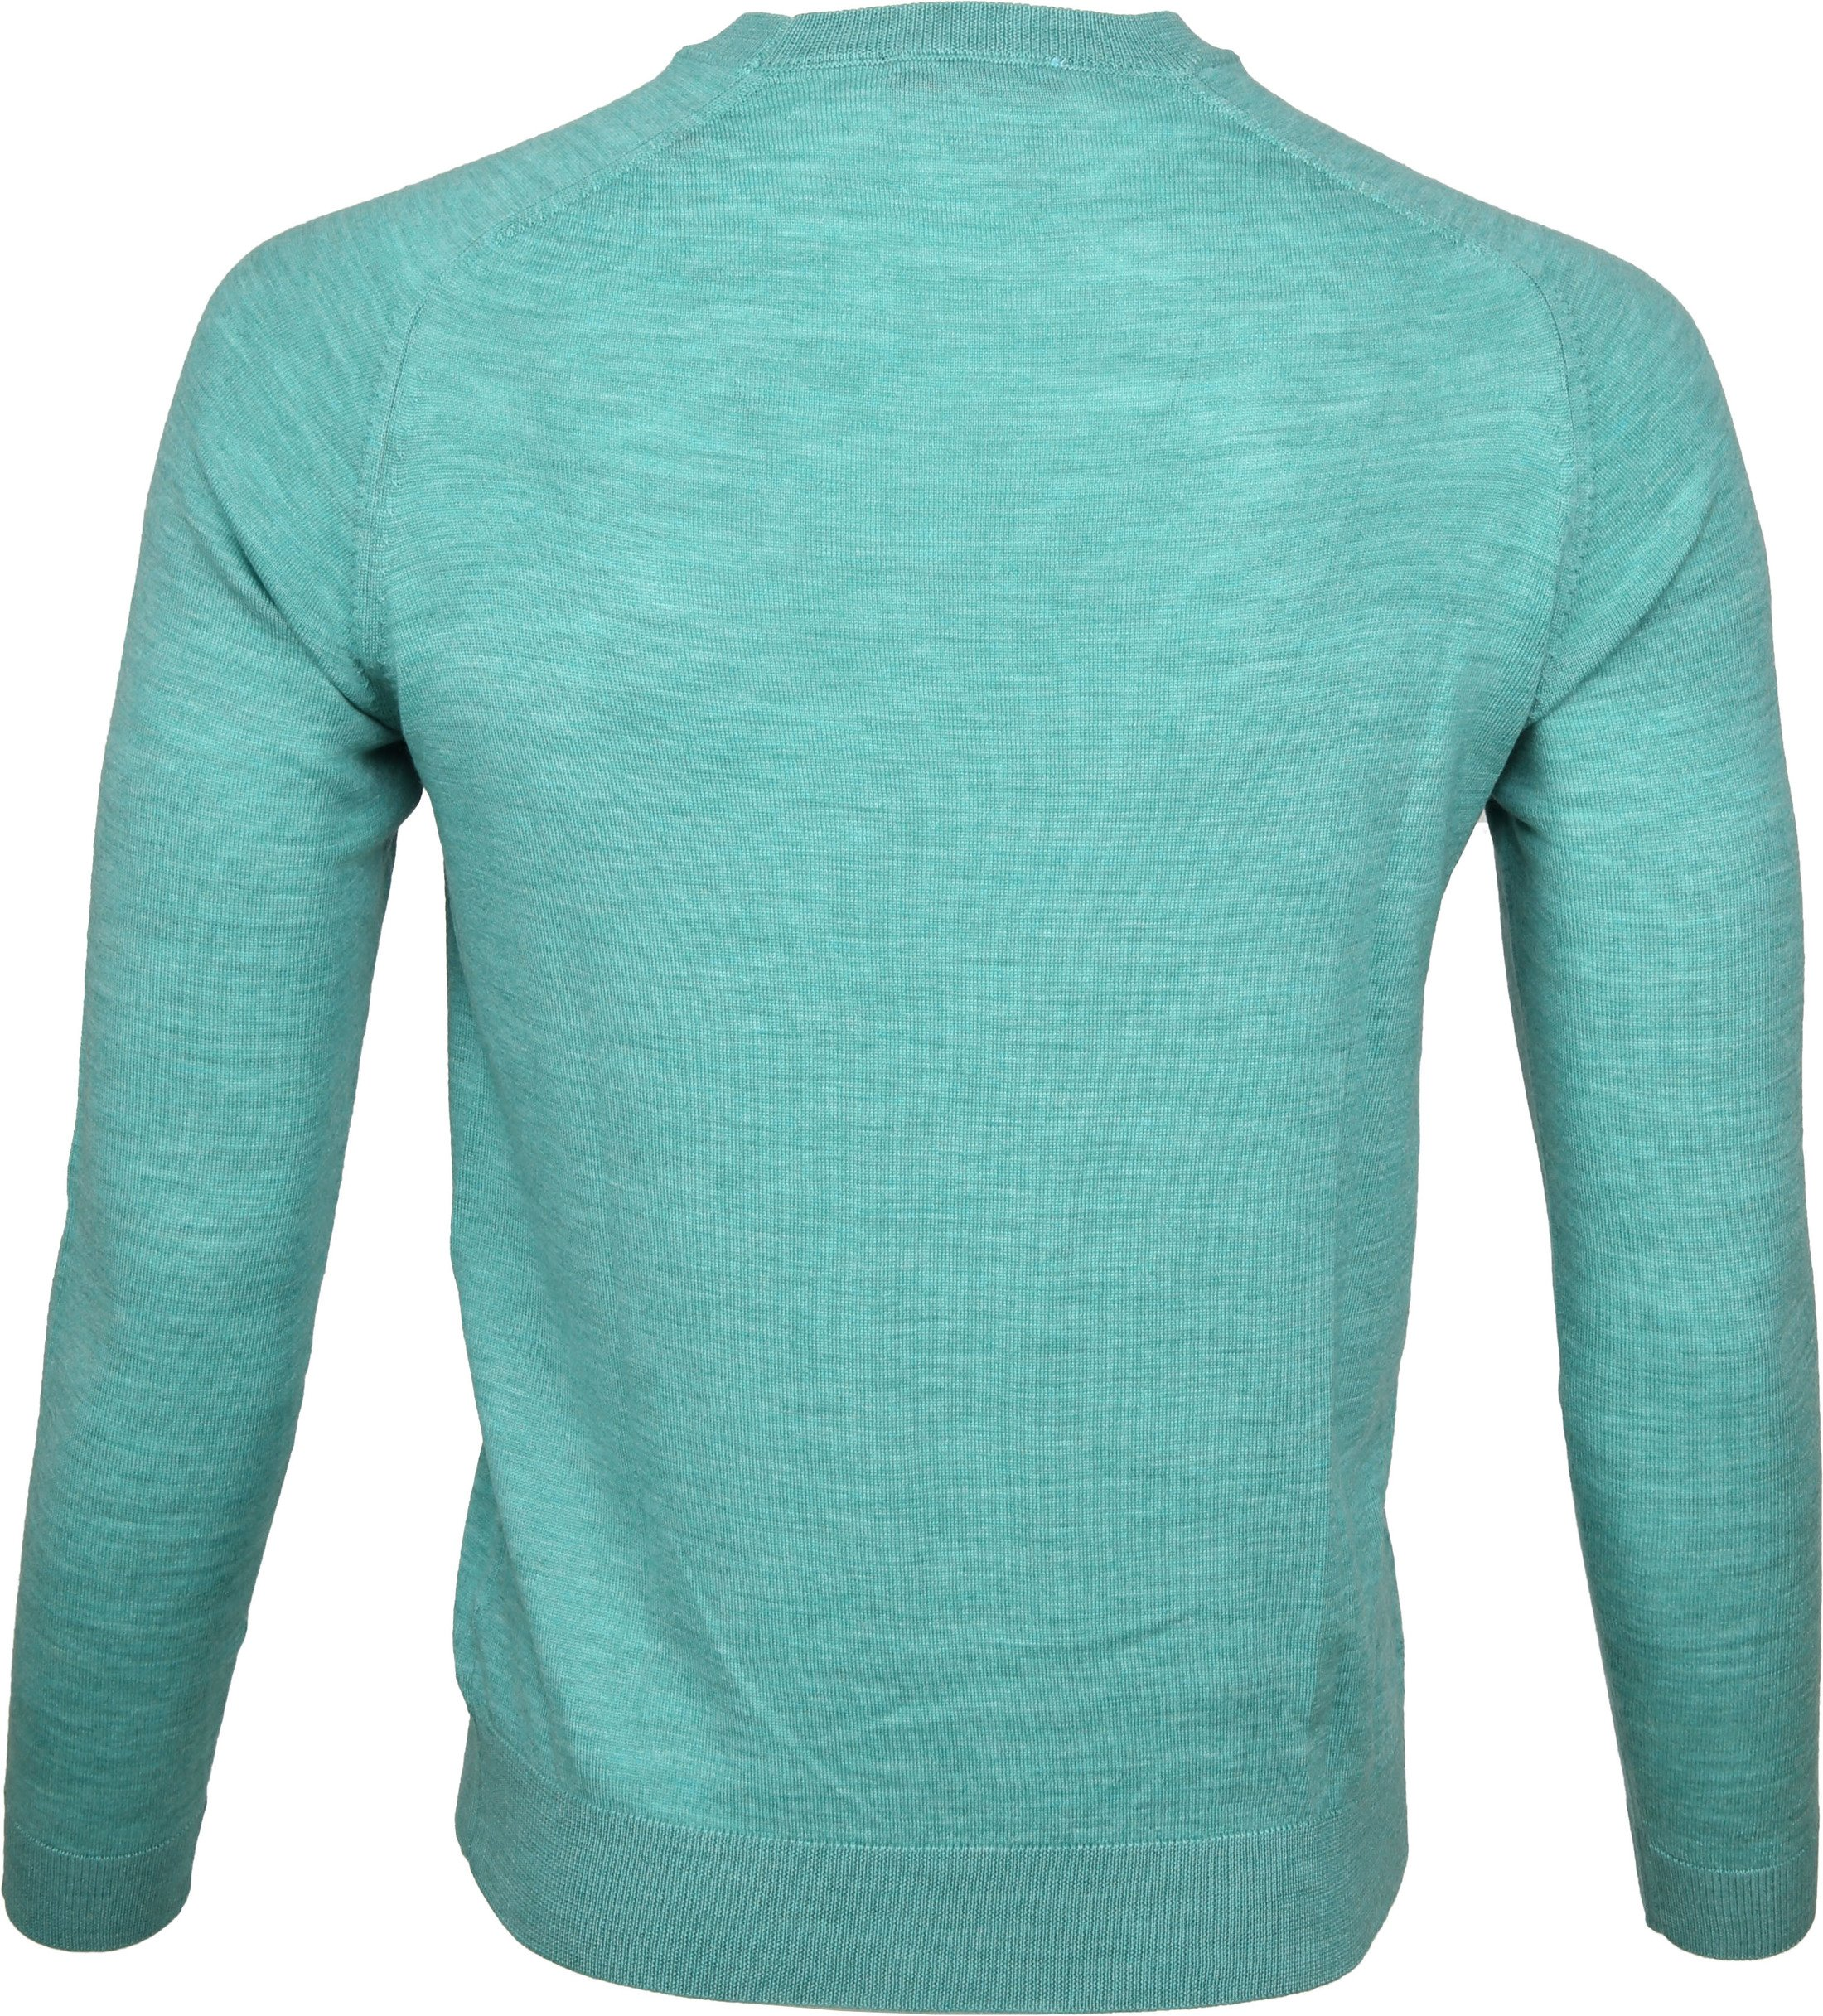 Suitable Pullover Merino Groen foto 2